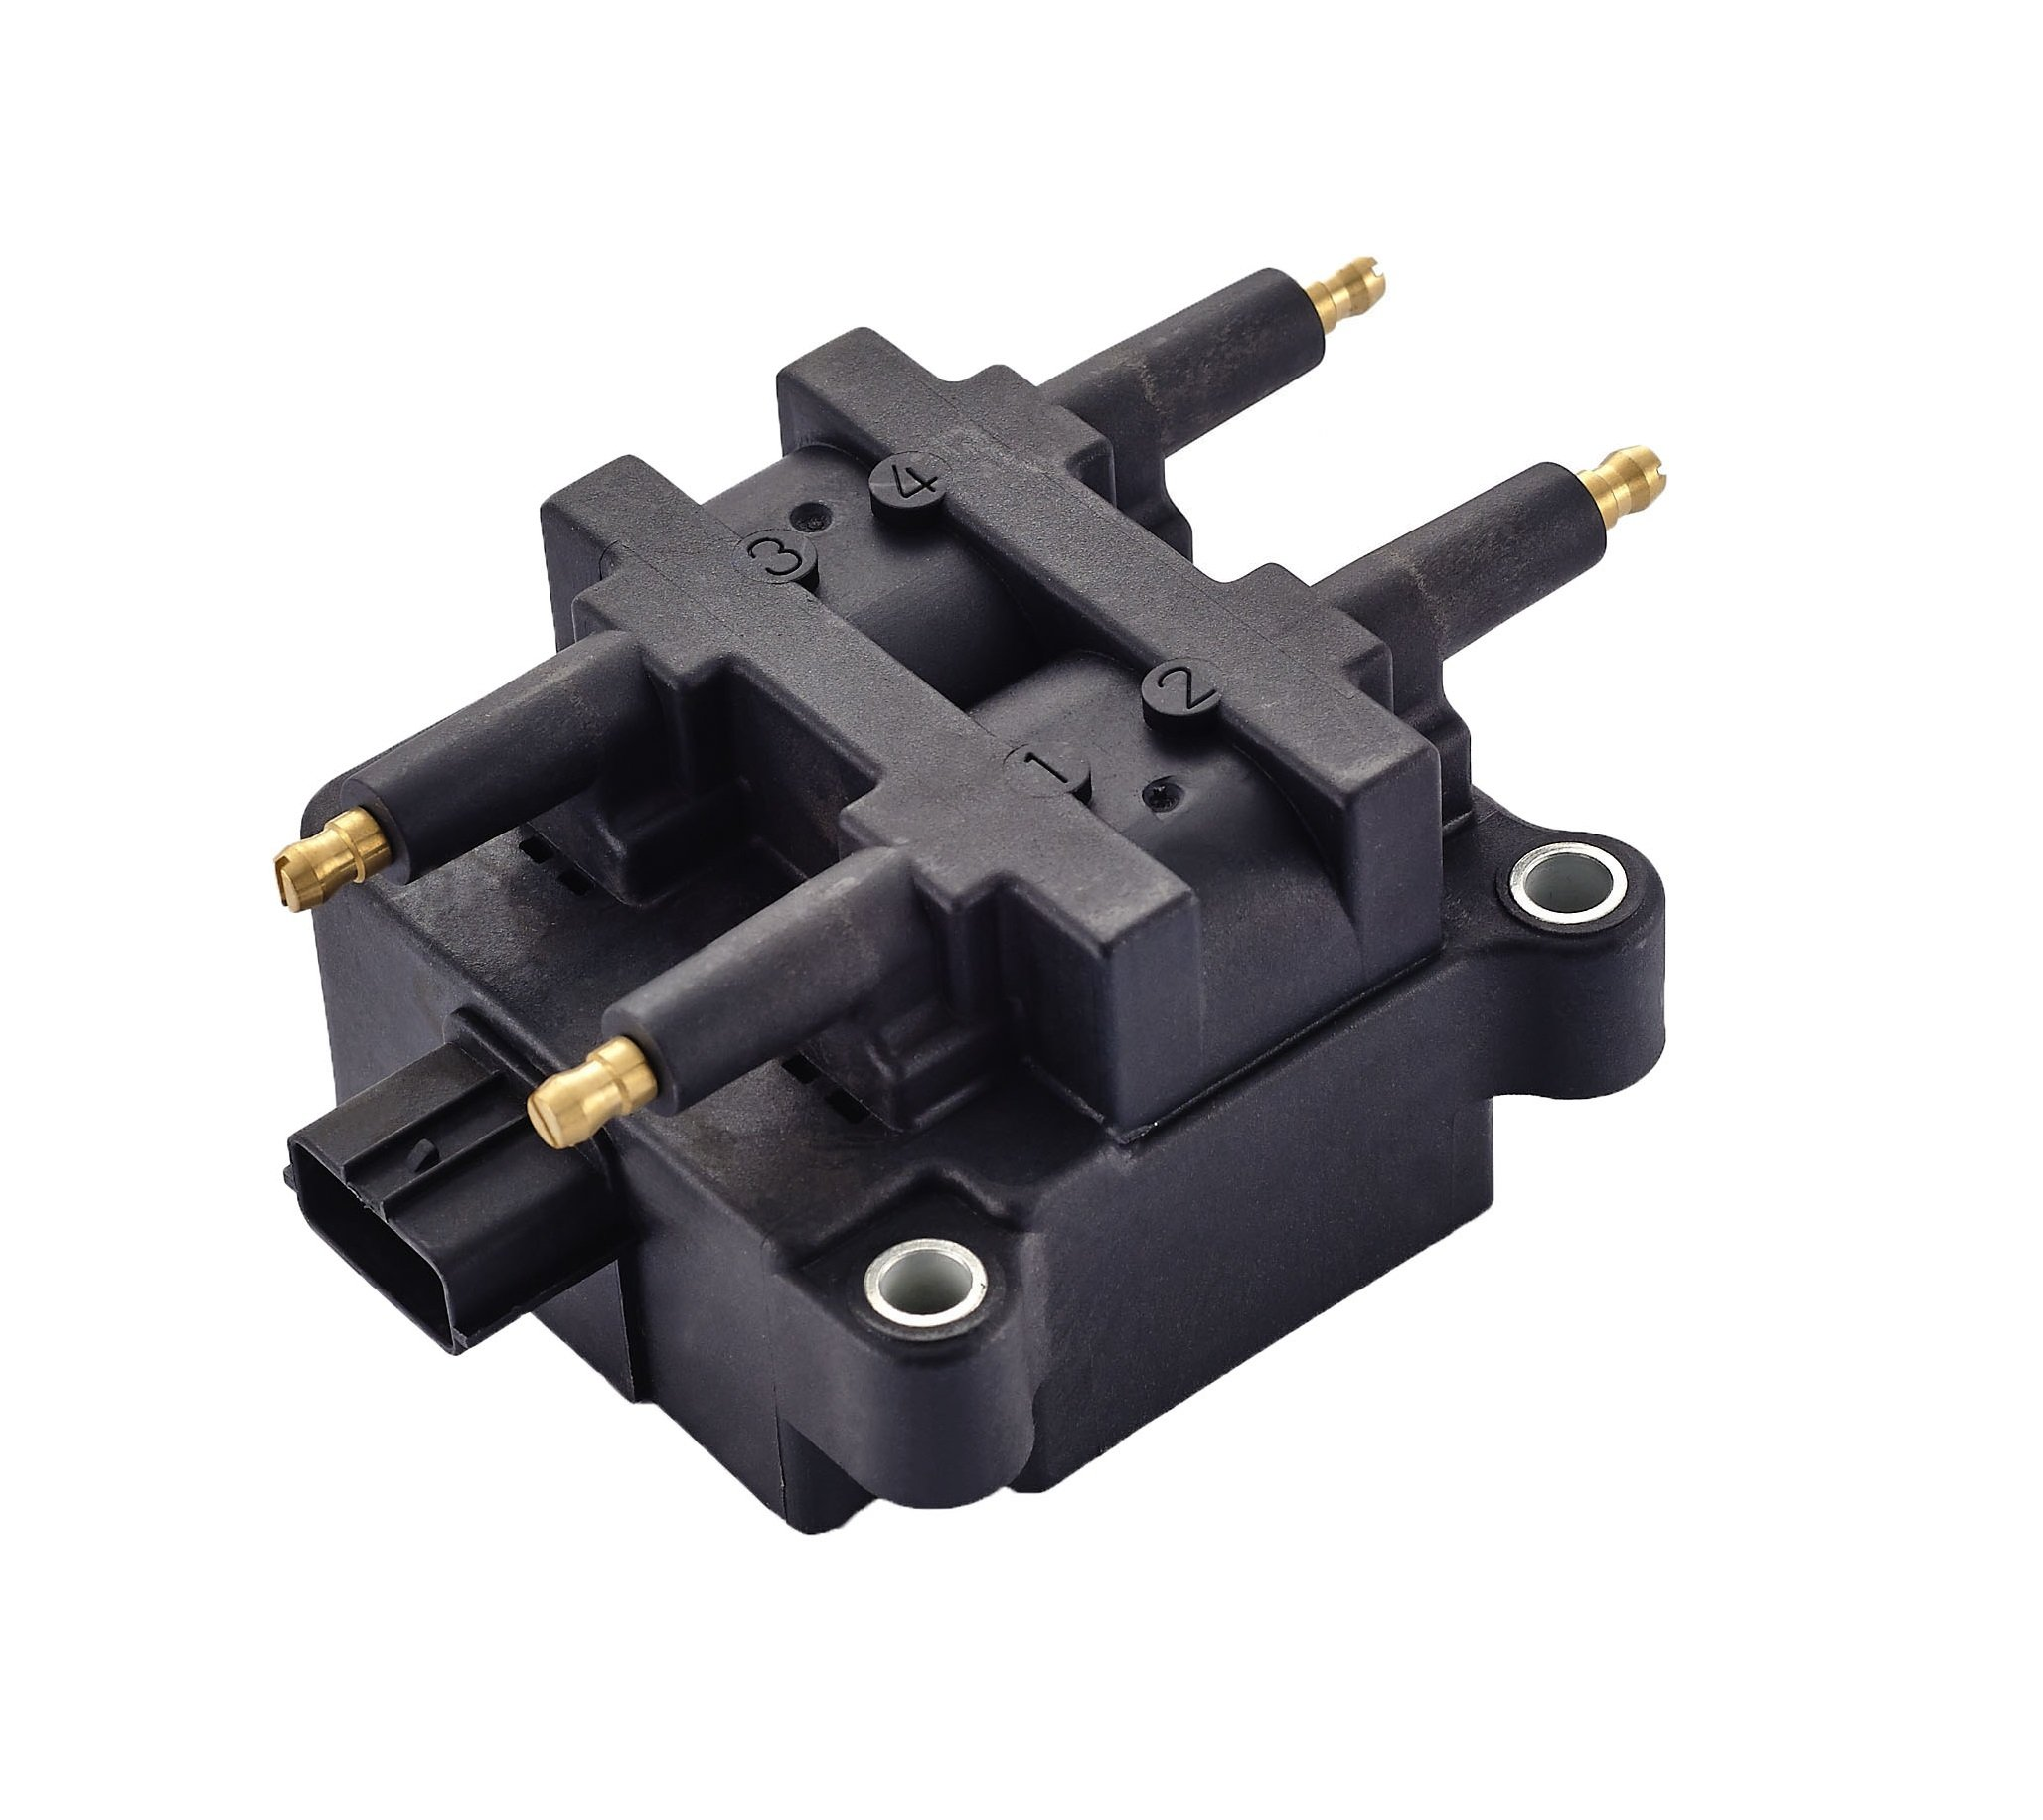 Ignition Coil Pack 4 Pin for Subaru - Impreza Legacy Outback Forester Baja - 2.2L 2.5L Compatible with 22433-AA410 22433-AA570